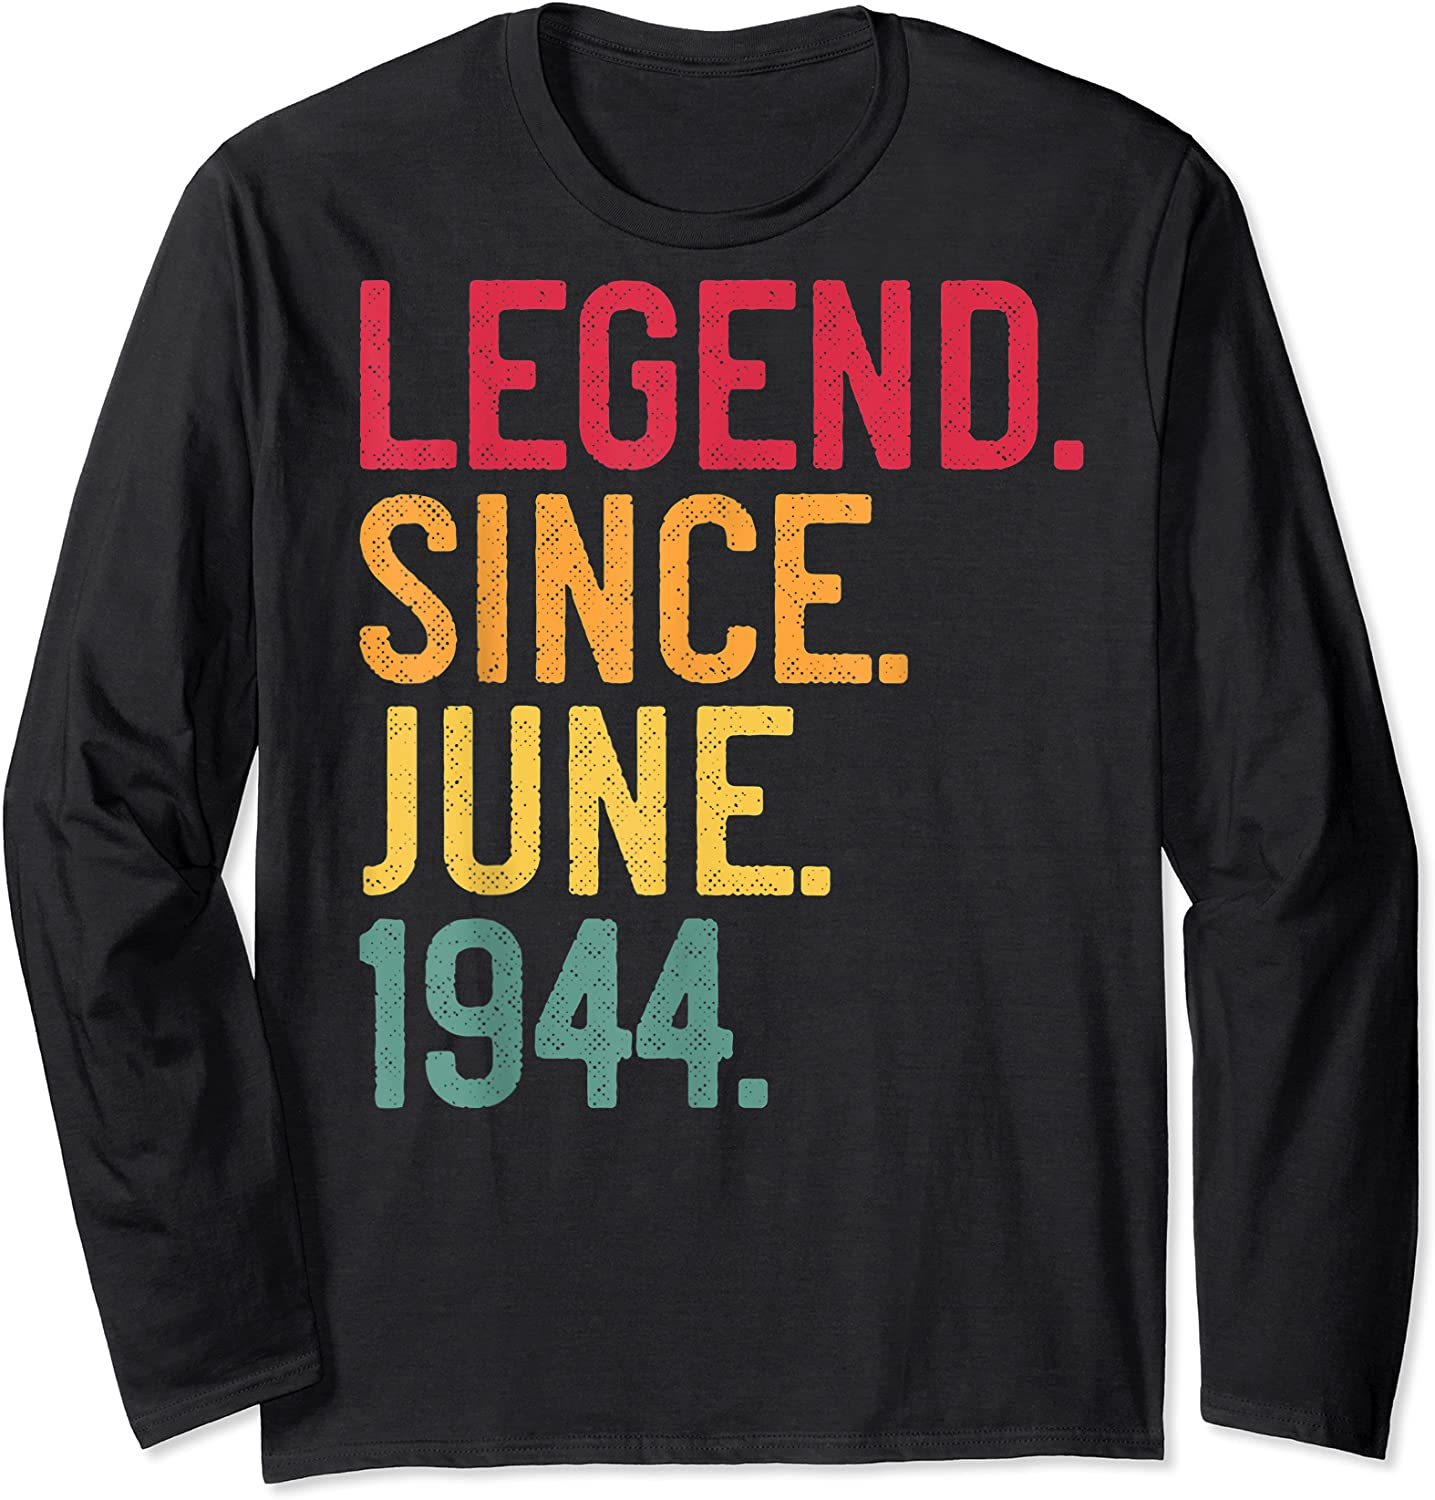 Legend Since June 1944 77th Birthday 77 Years Old Vintage T-shirt Long Sleeve T-shirt